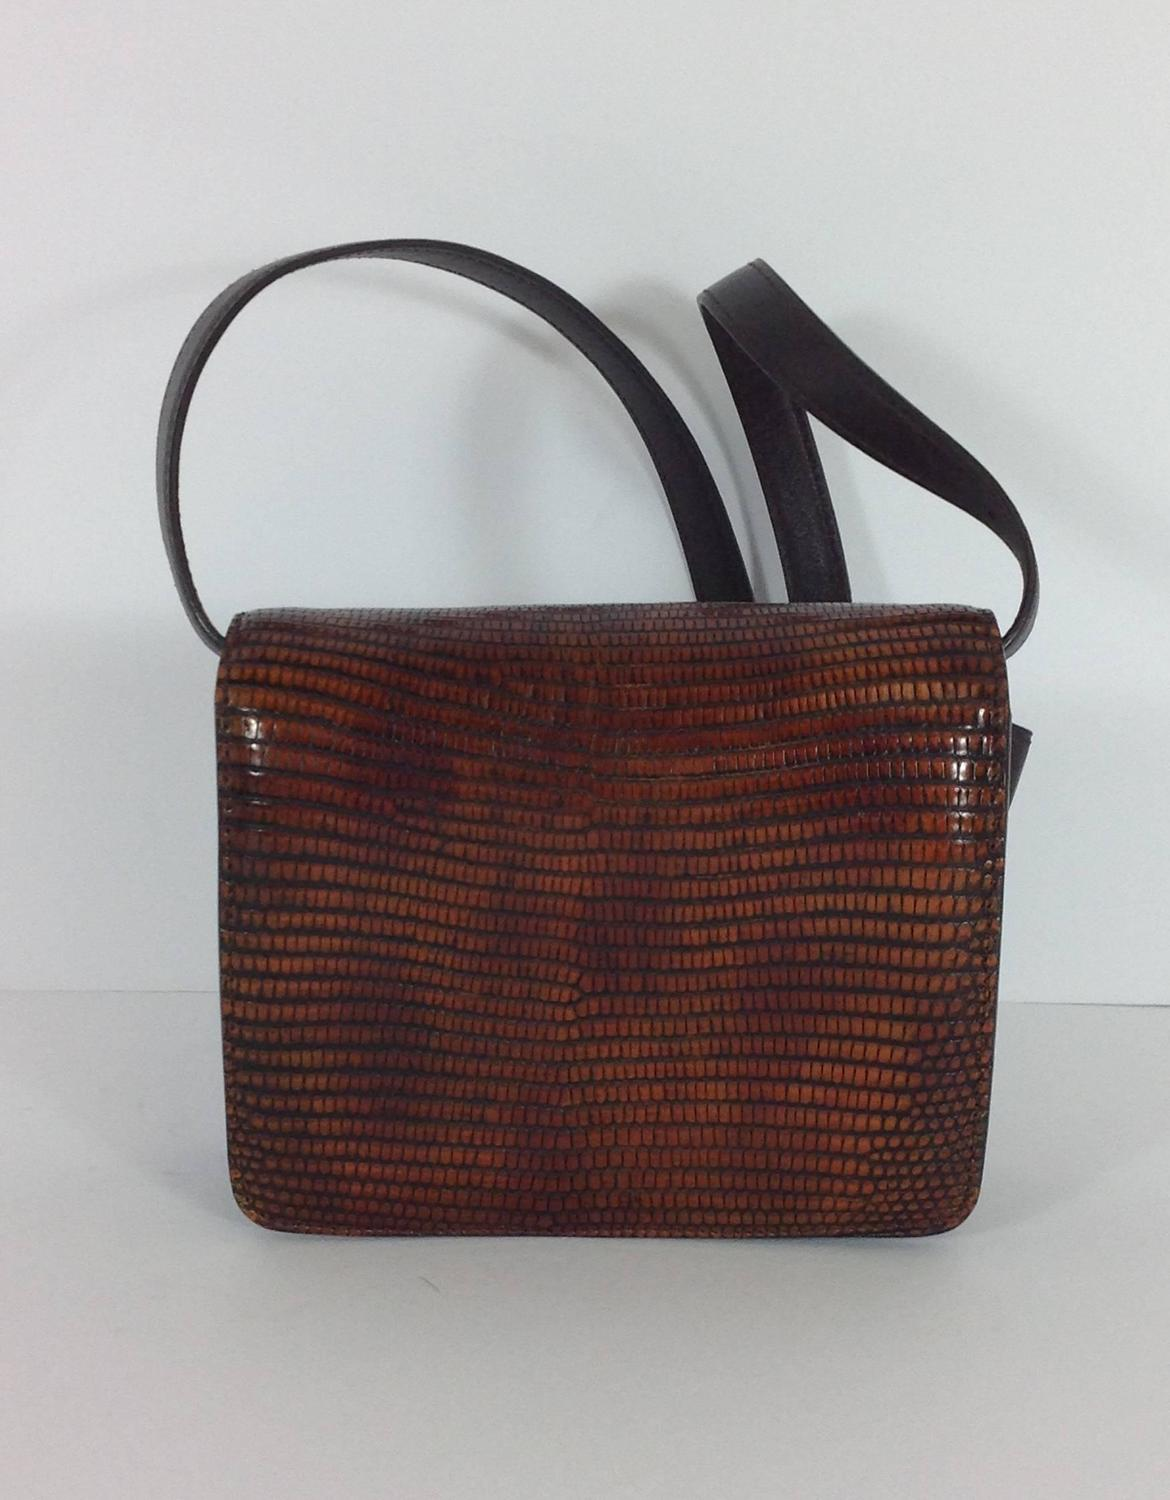 Lizard and leather Celine box bag For Sale at 1stdibs